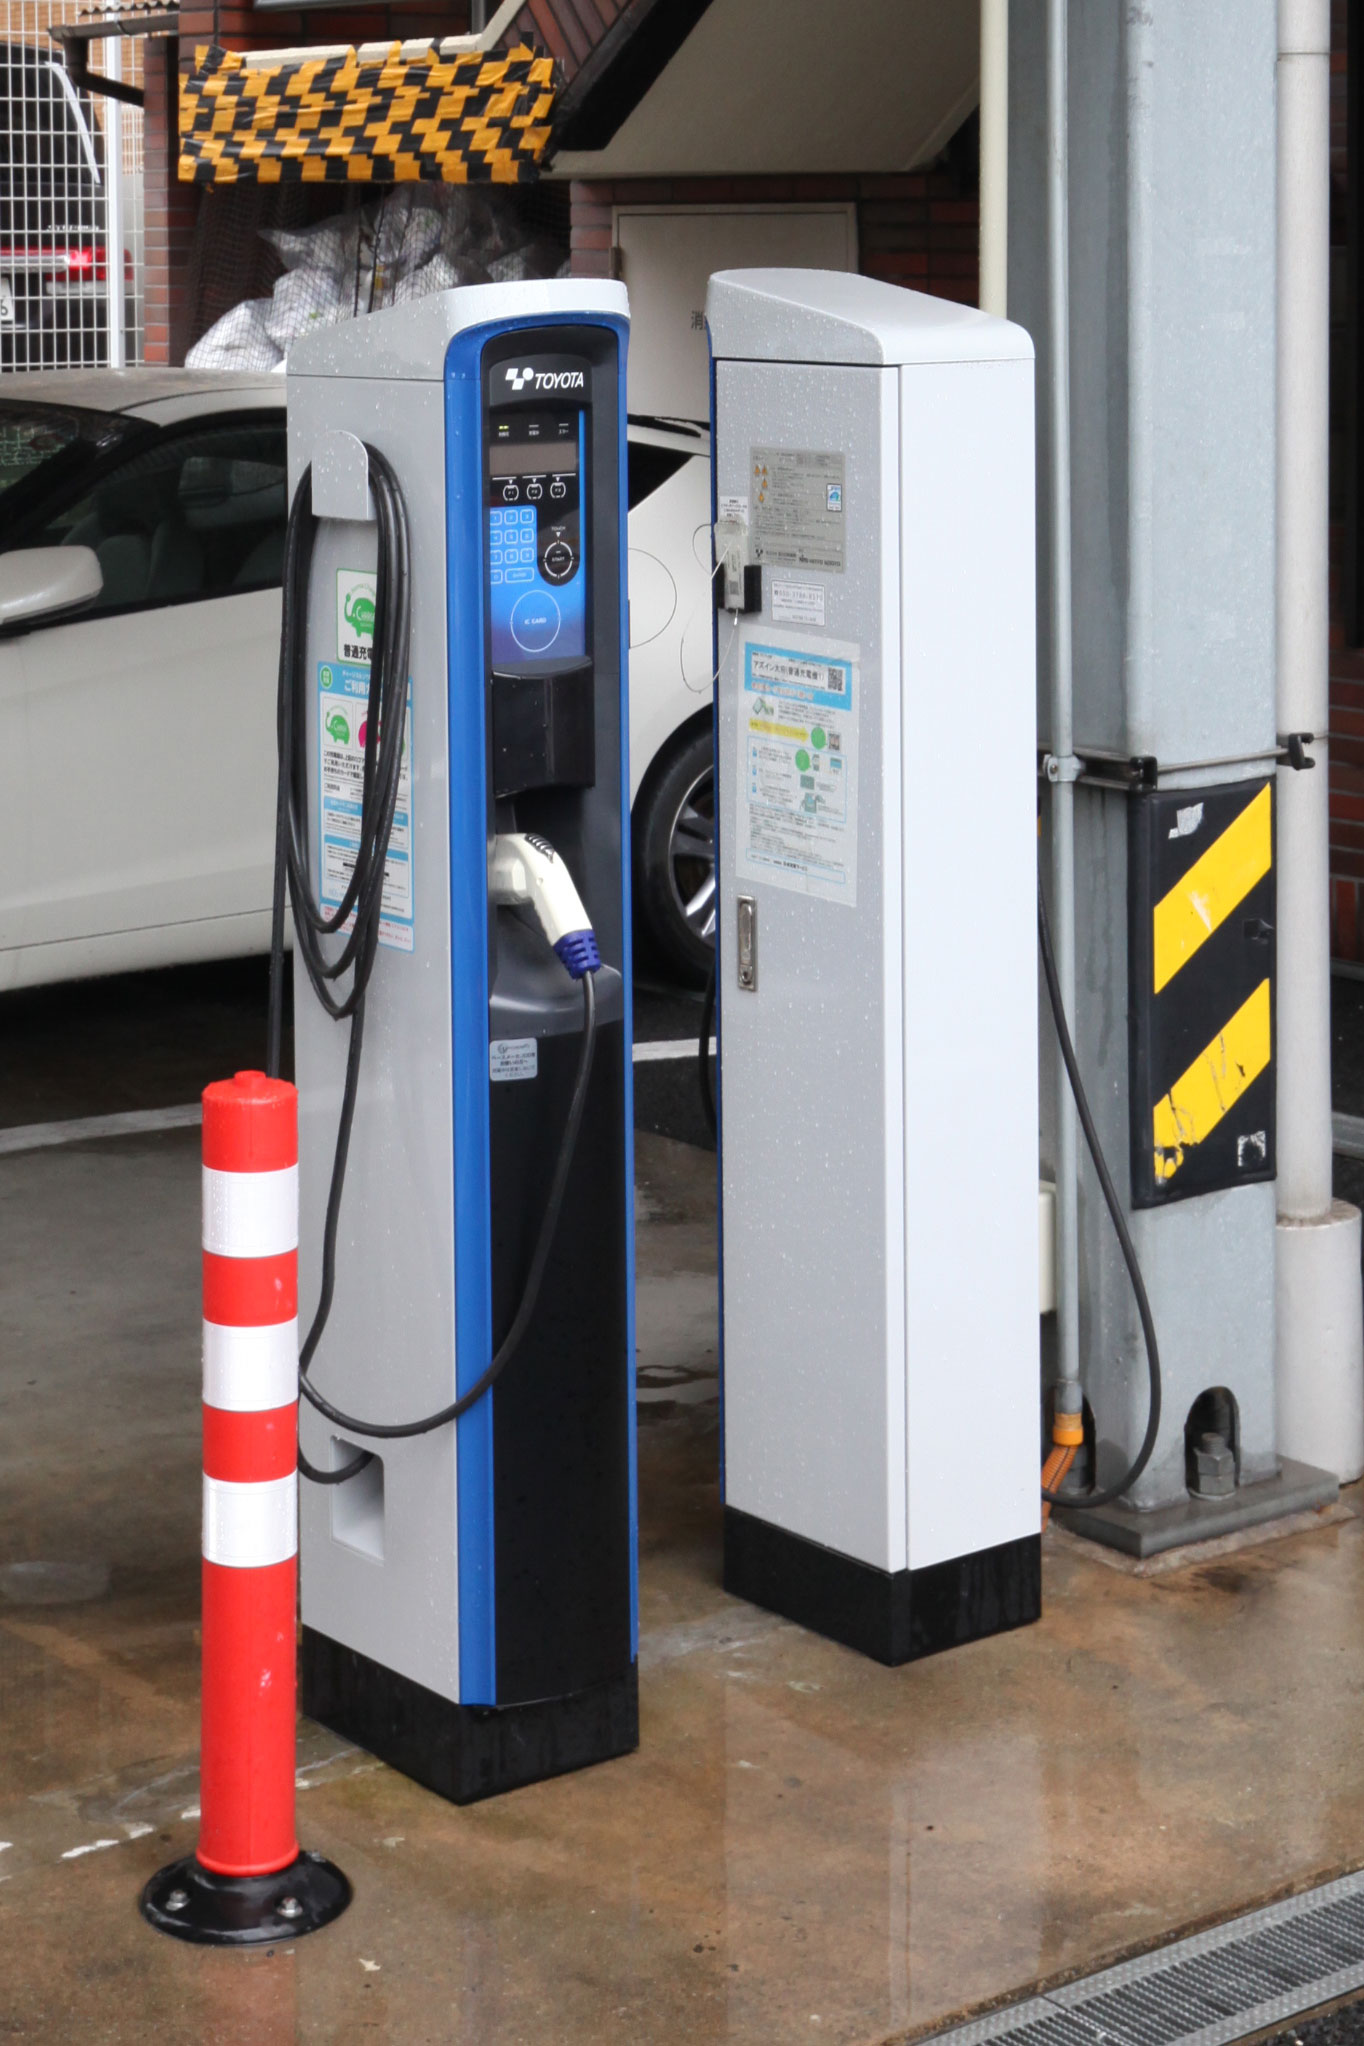 Equipped with electric car charger